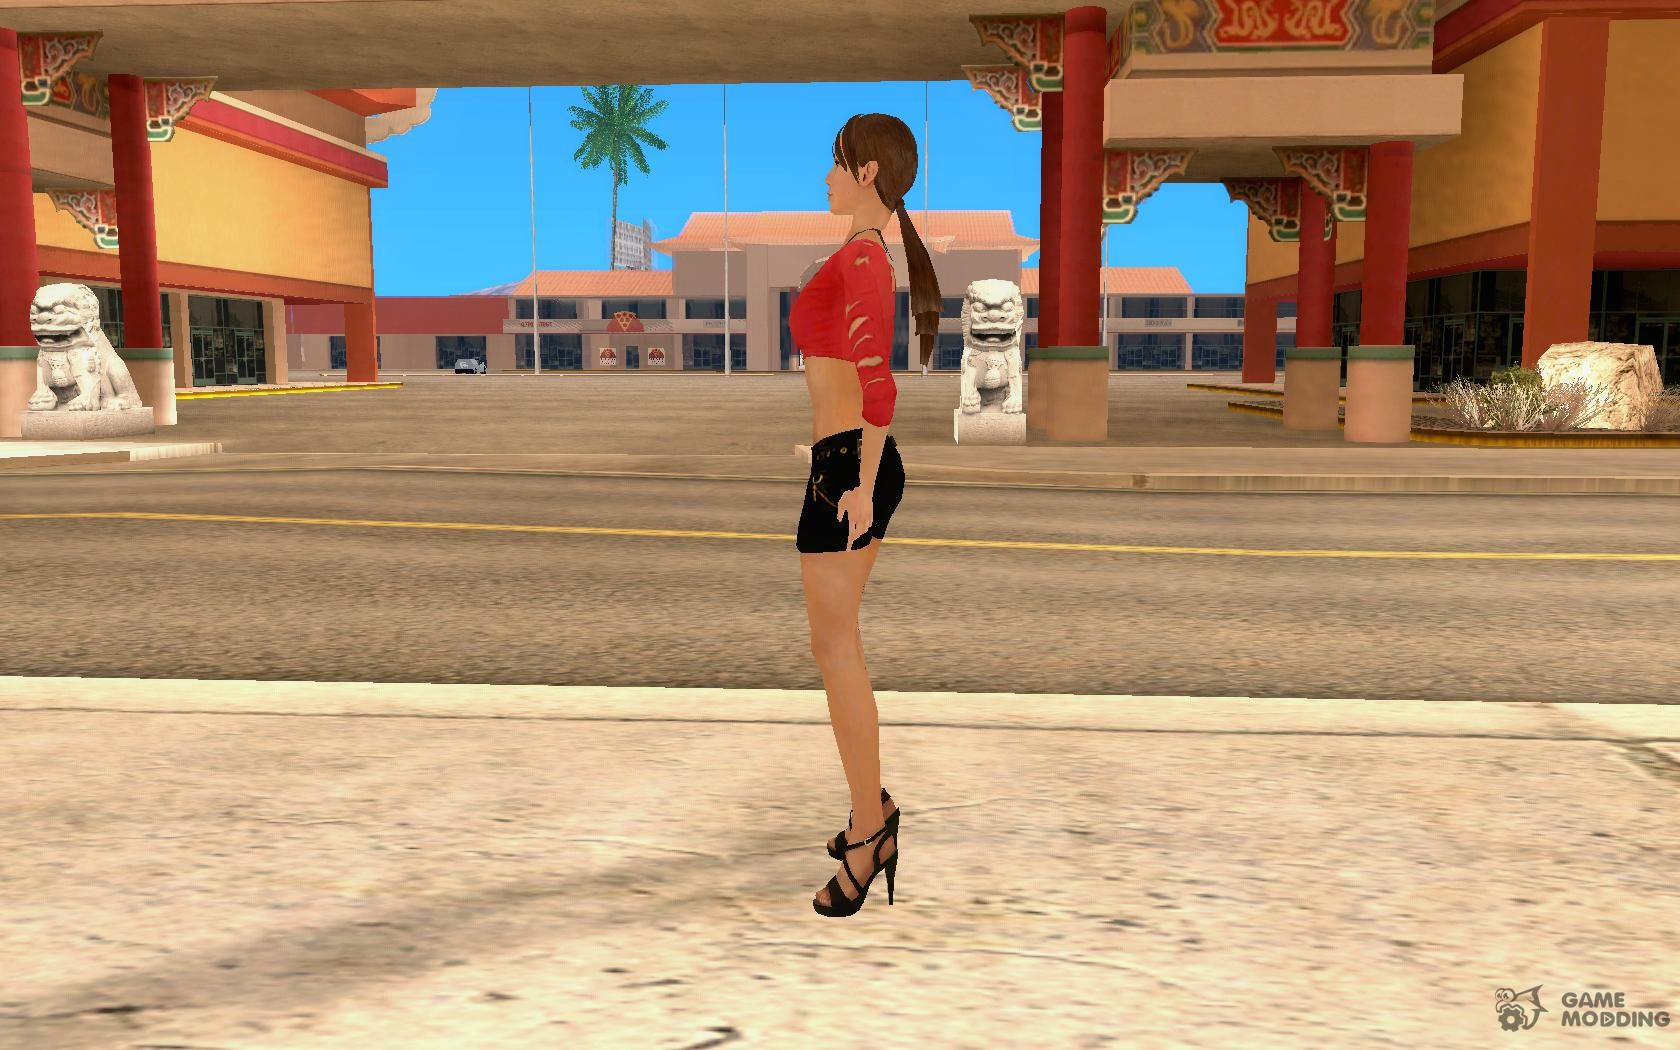 Gta san andreas sexy beach girls image sexy photo